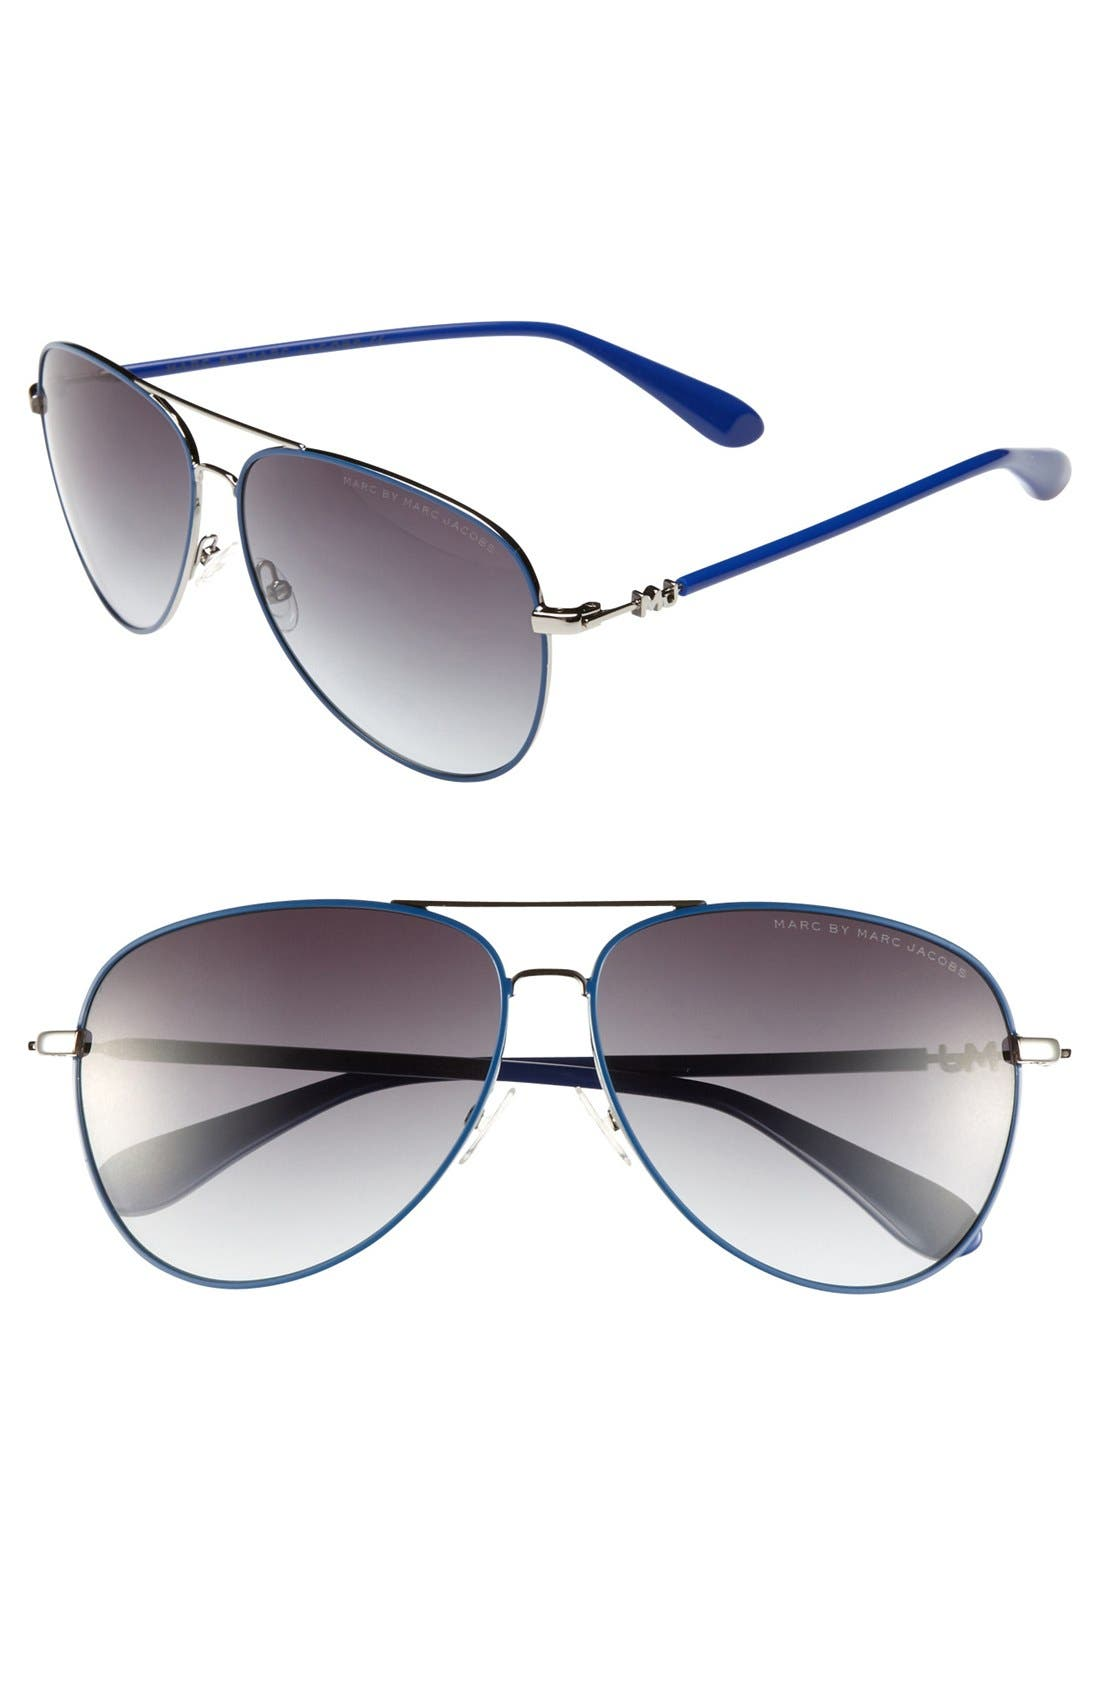 Main Image - MARC BY MARC JACOBS 59mm Metal Aviator Sunglasses